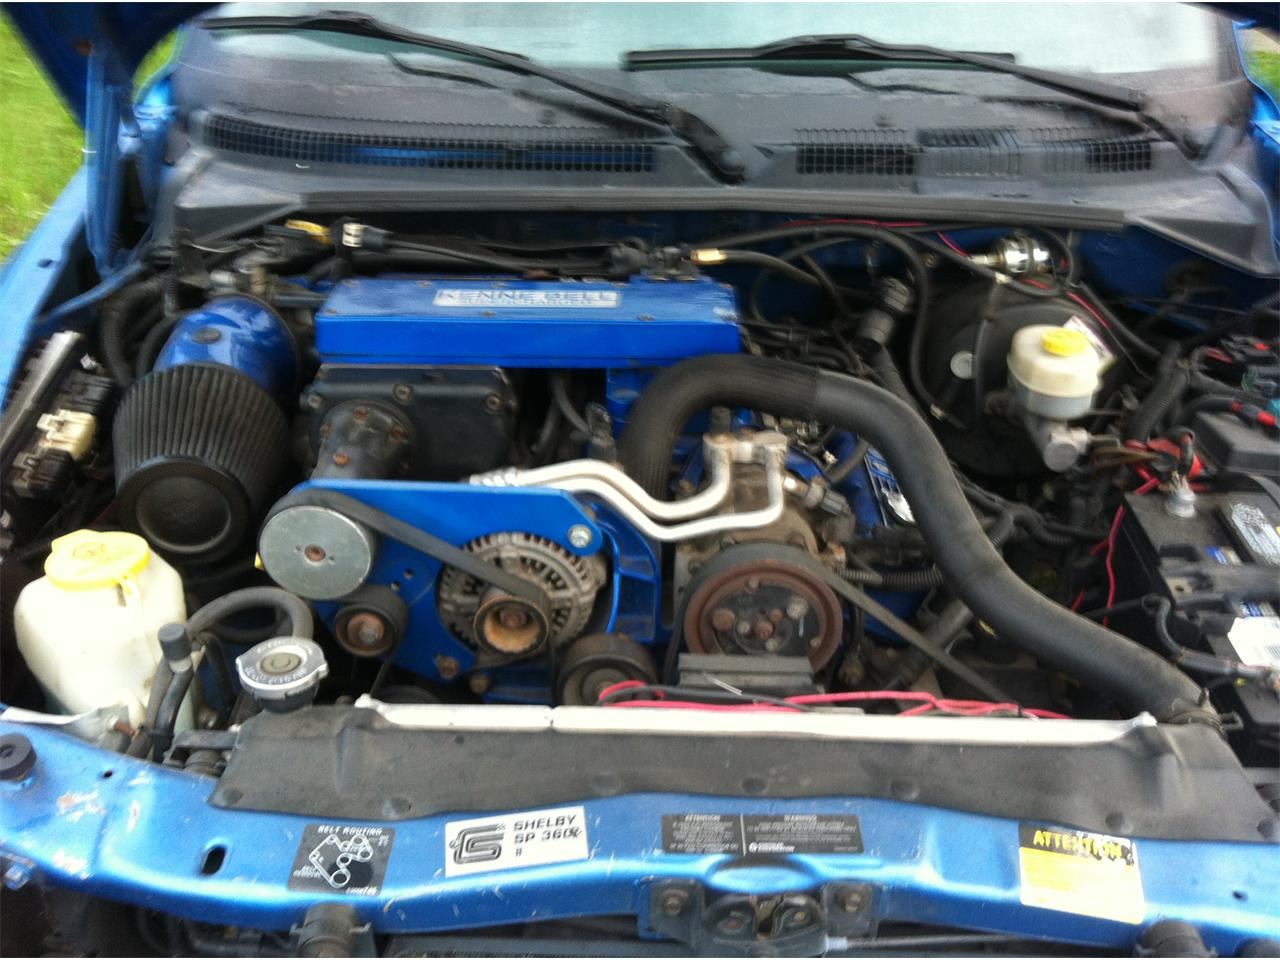 Large Picture of 1999 Shelby Durango Shelby SP360 - $20,000.00 Offered by a Private Seller - D6I4